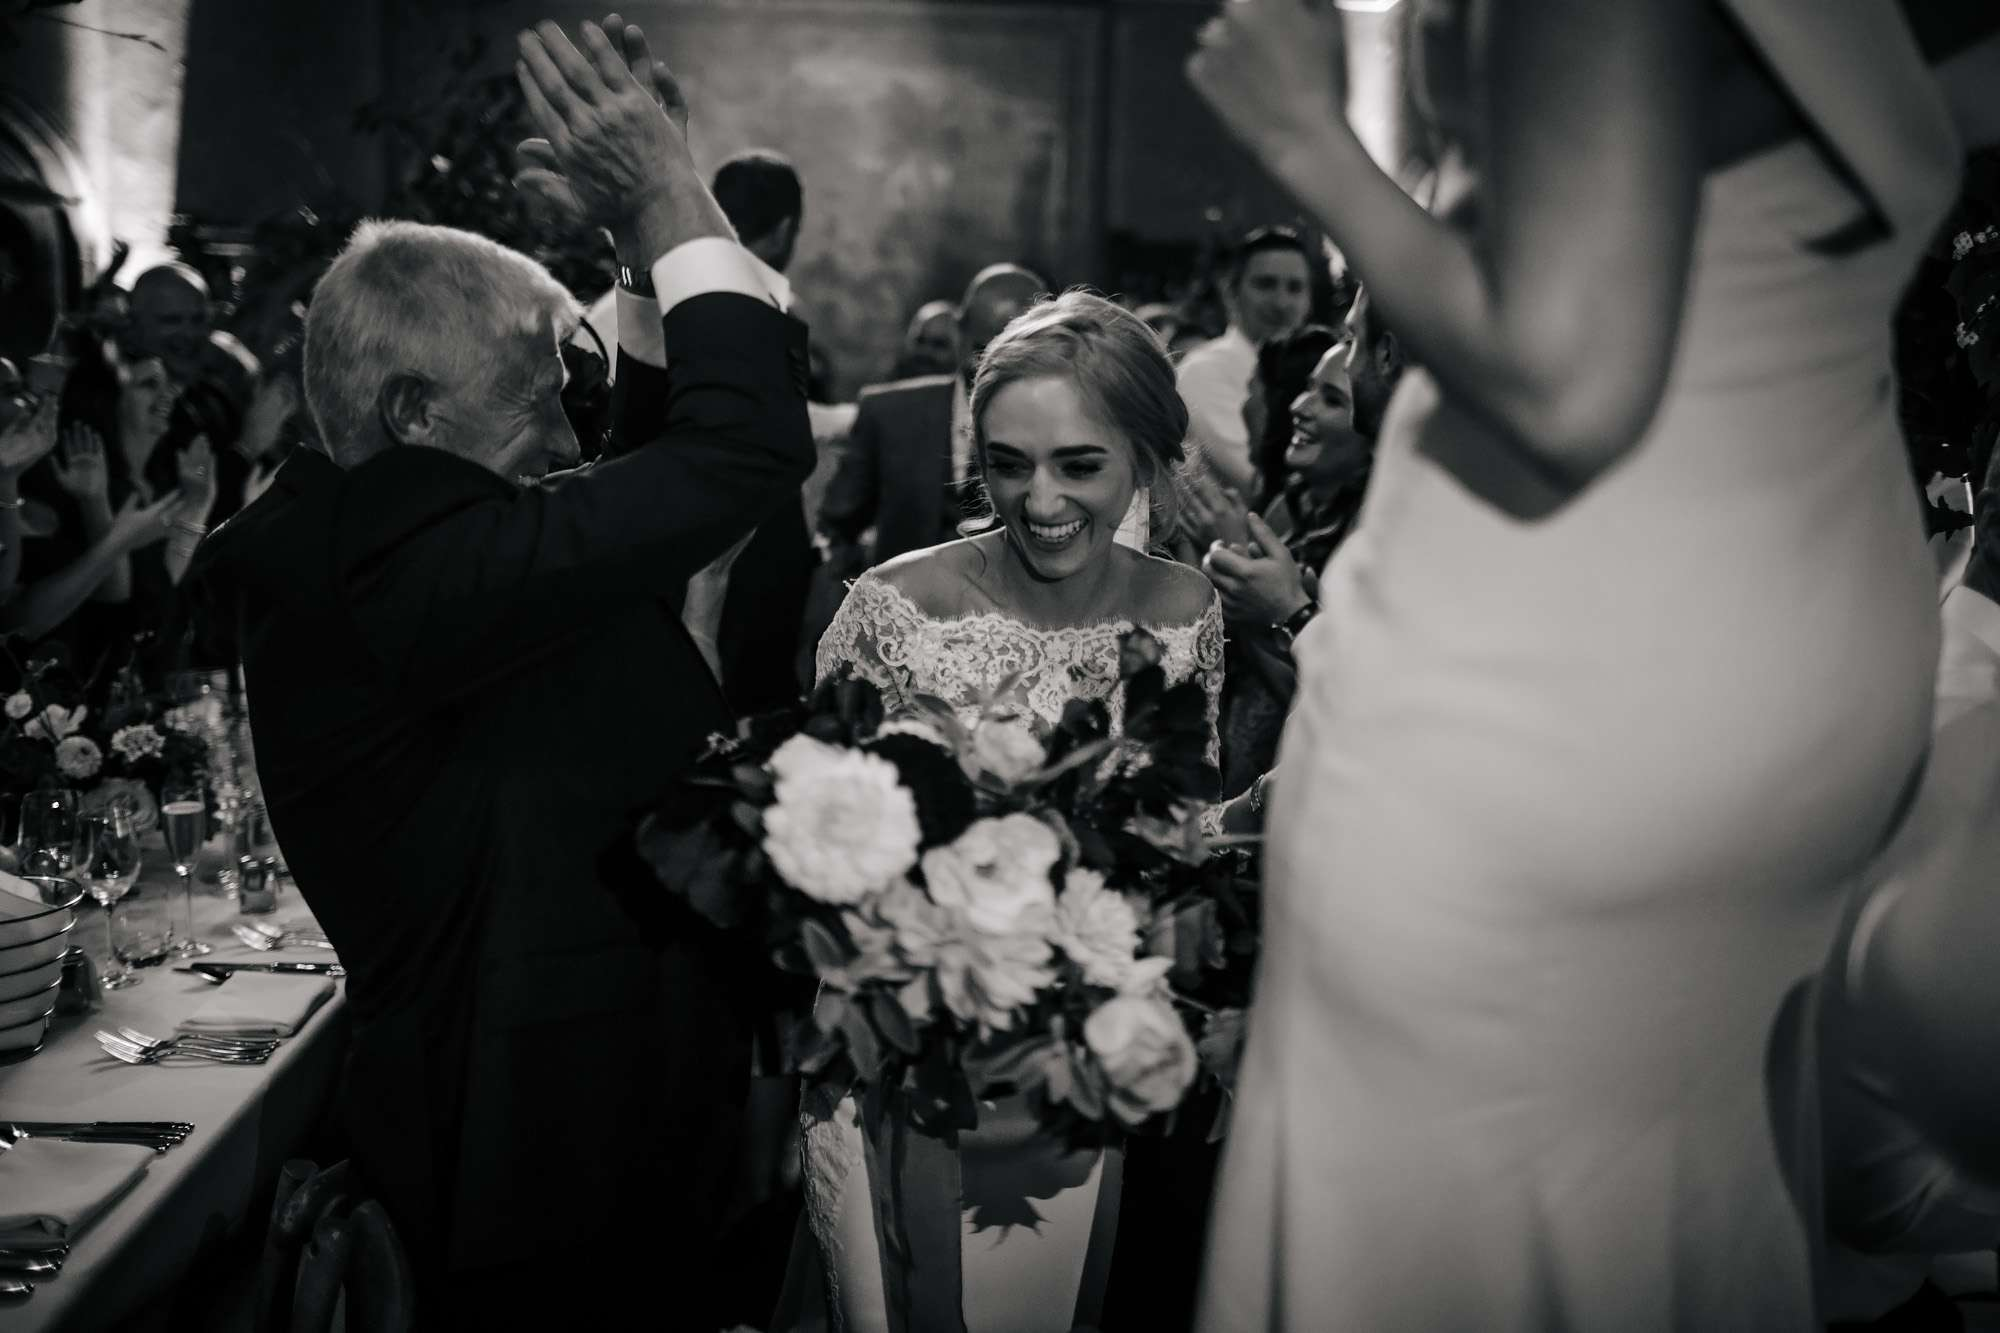 Guests cheer as bride and groom enter the dining room